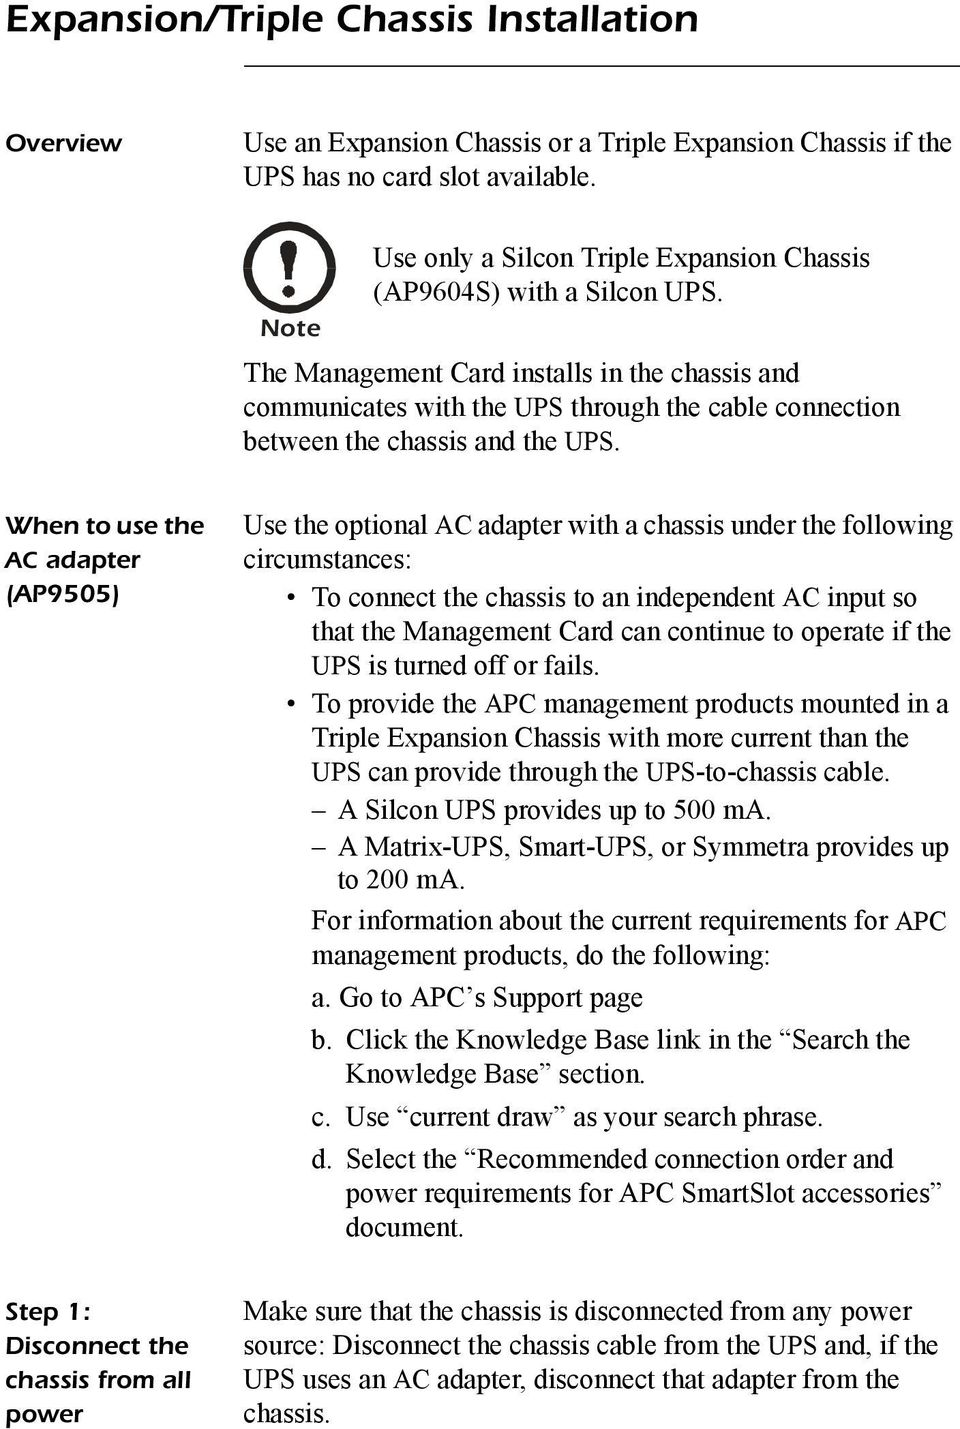 The Management Card installs in the chassis and communicates with the UPS through the cable connection between the chassis and the UPS.